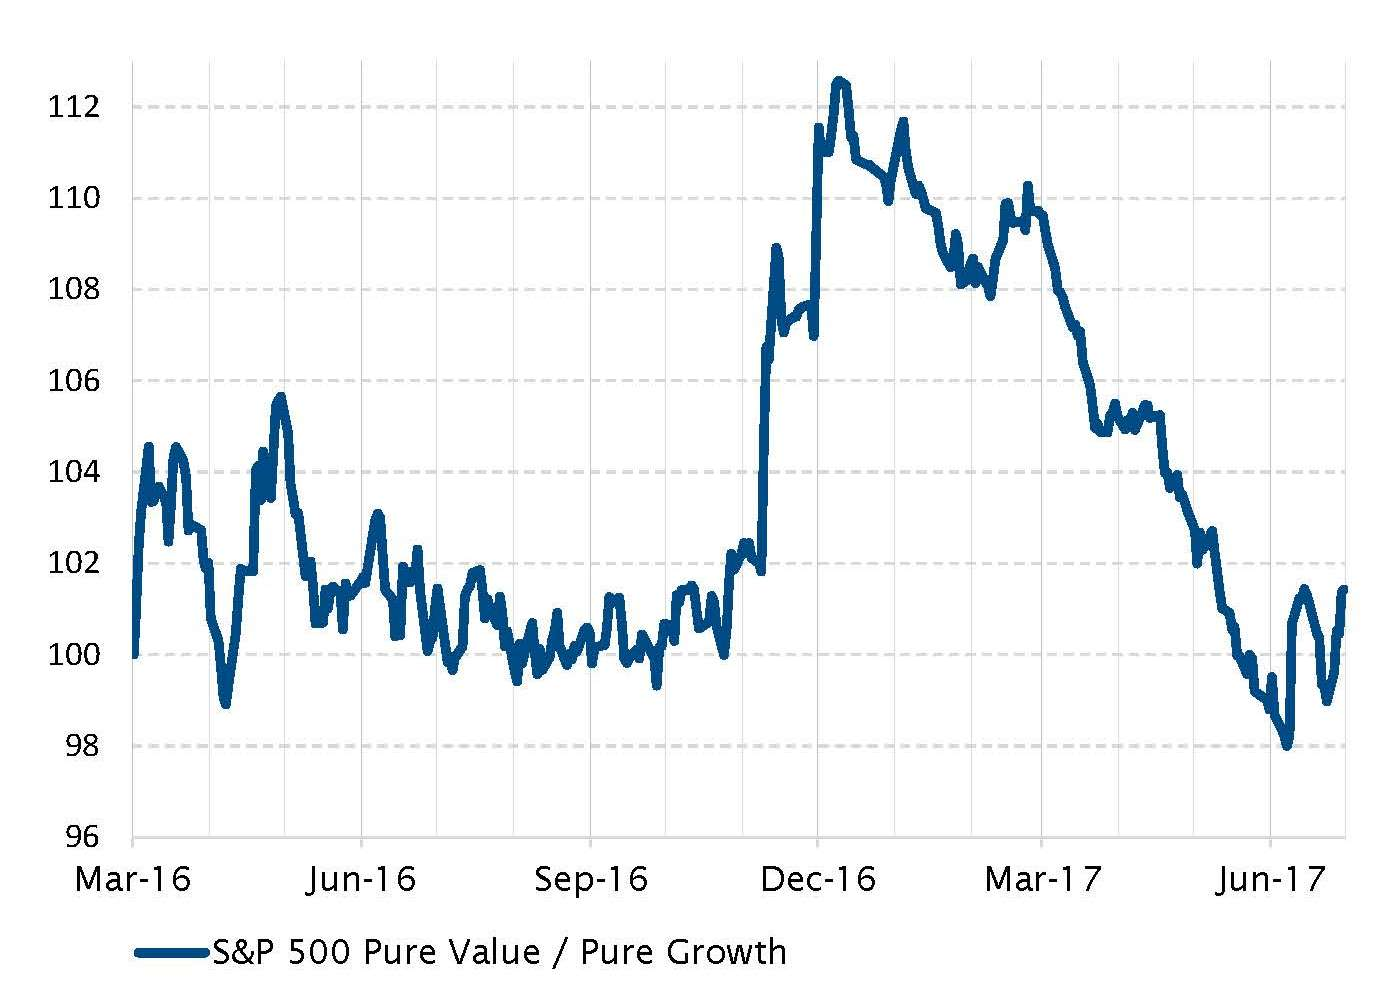 S&P 500 Pure Value/Pure Growth